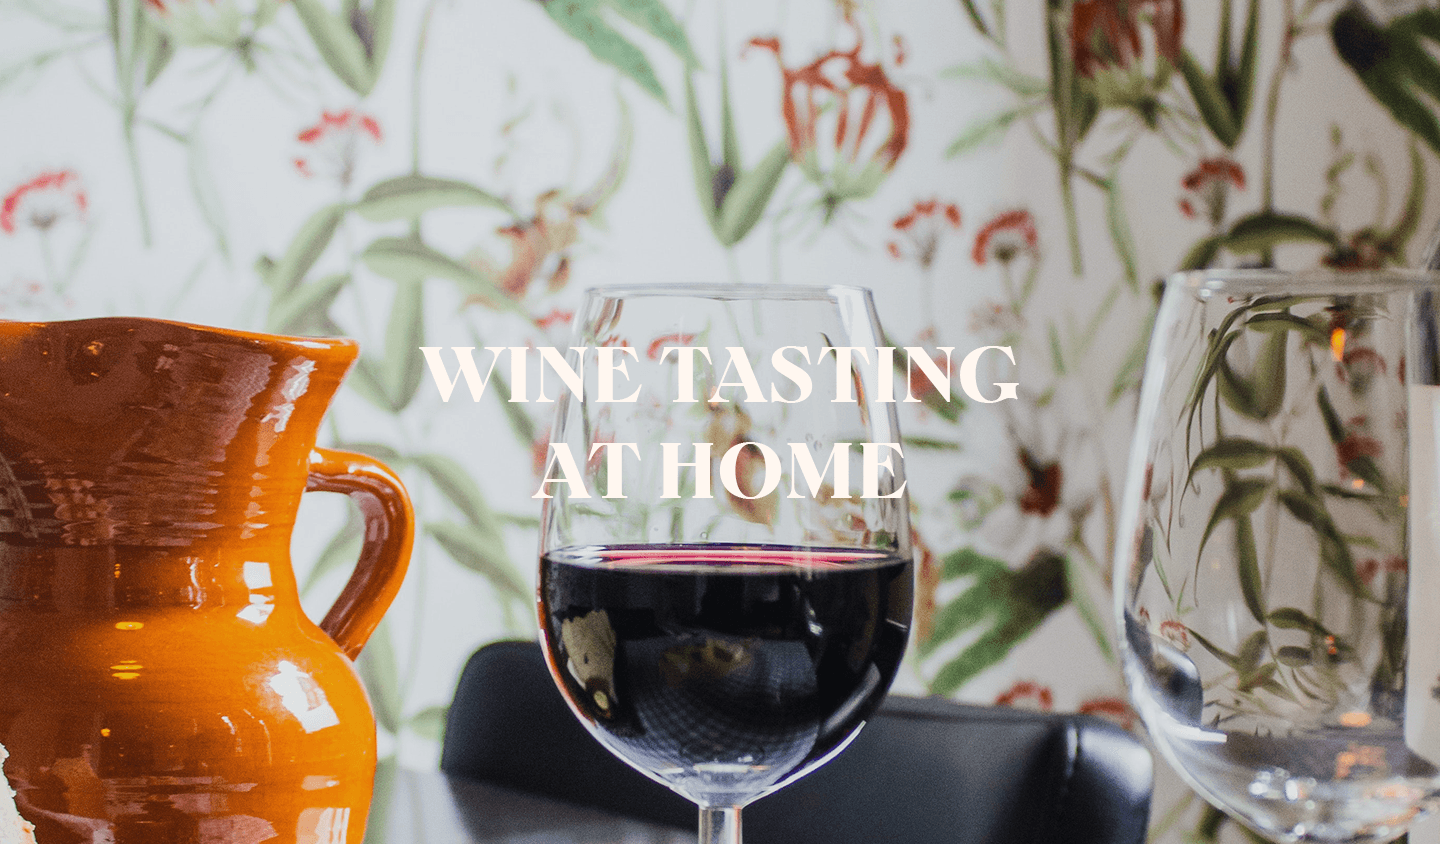 How to Taste Wine at Home